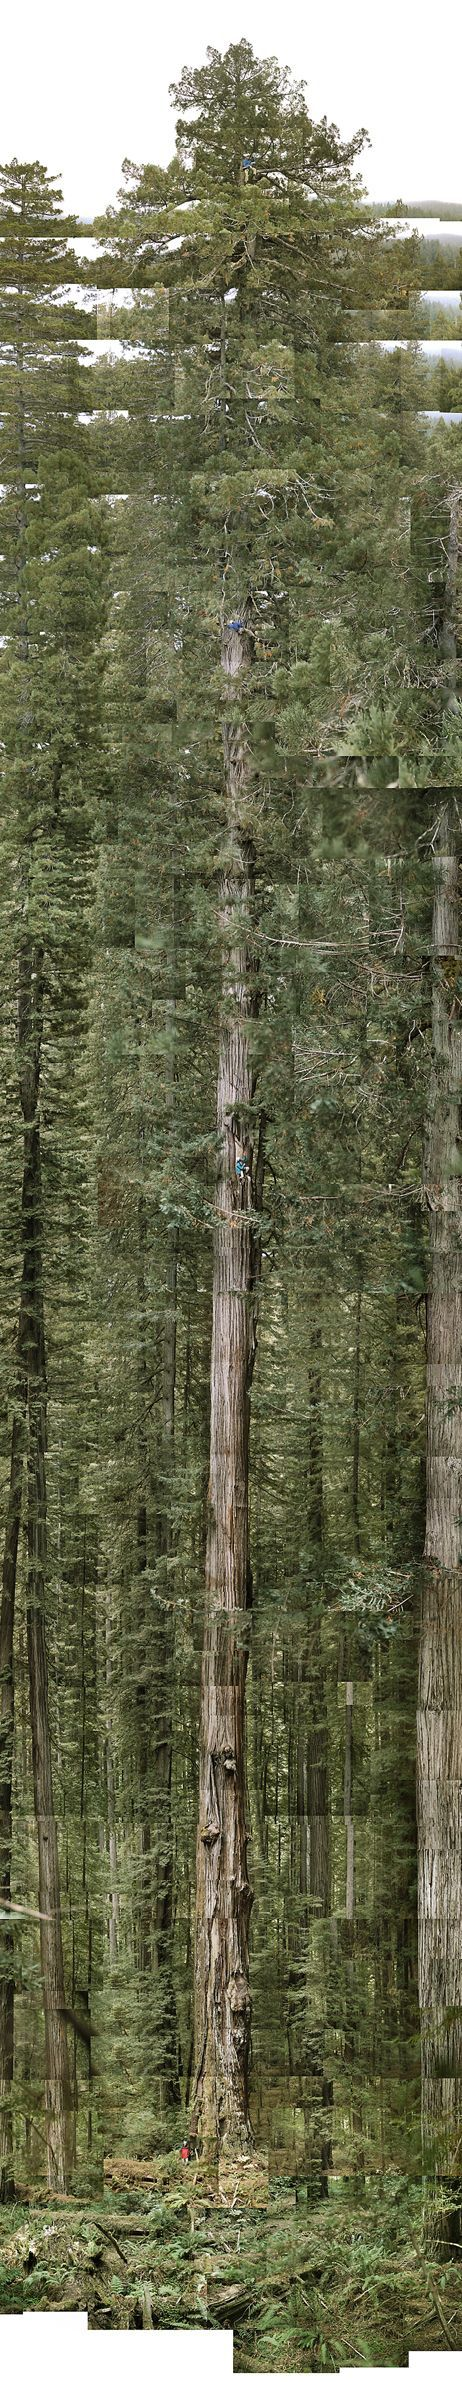 """California Cool: """"Hyperion"""" world's tallest tree.   379.7 feet = twice the height of the Statue of Liberty.  Location - Humboldt Redwoods State Park"""